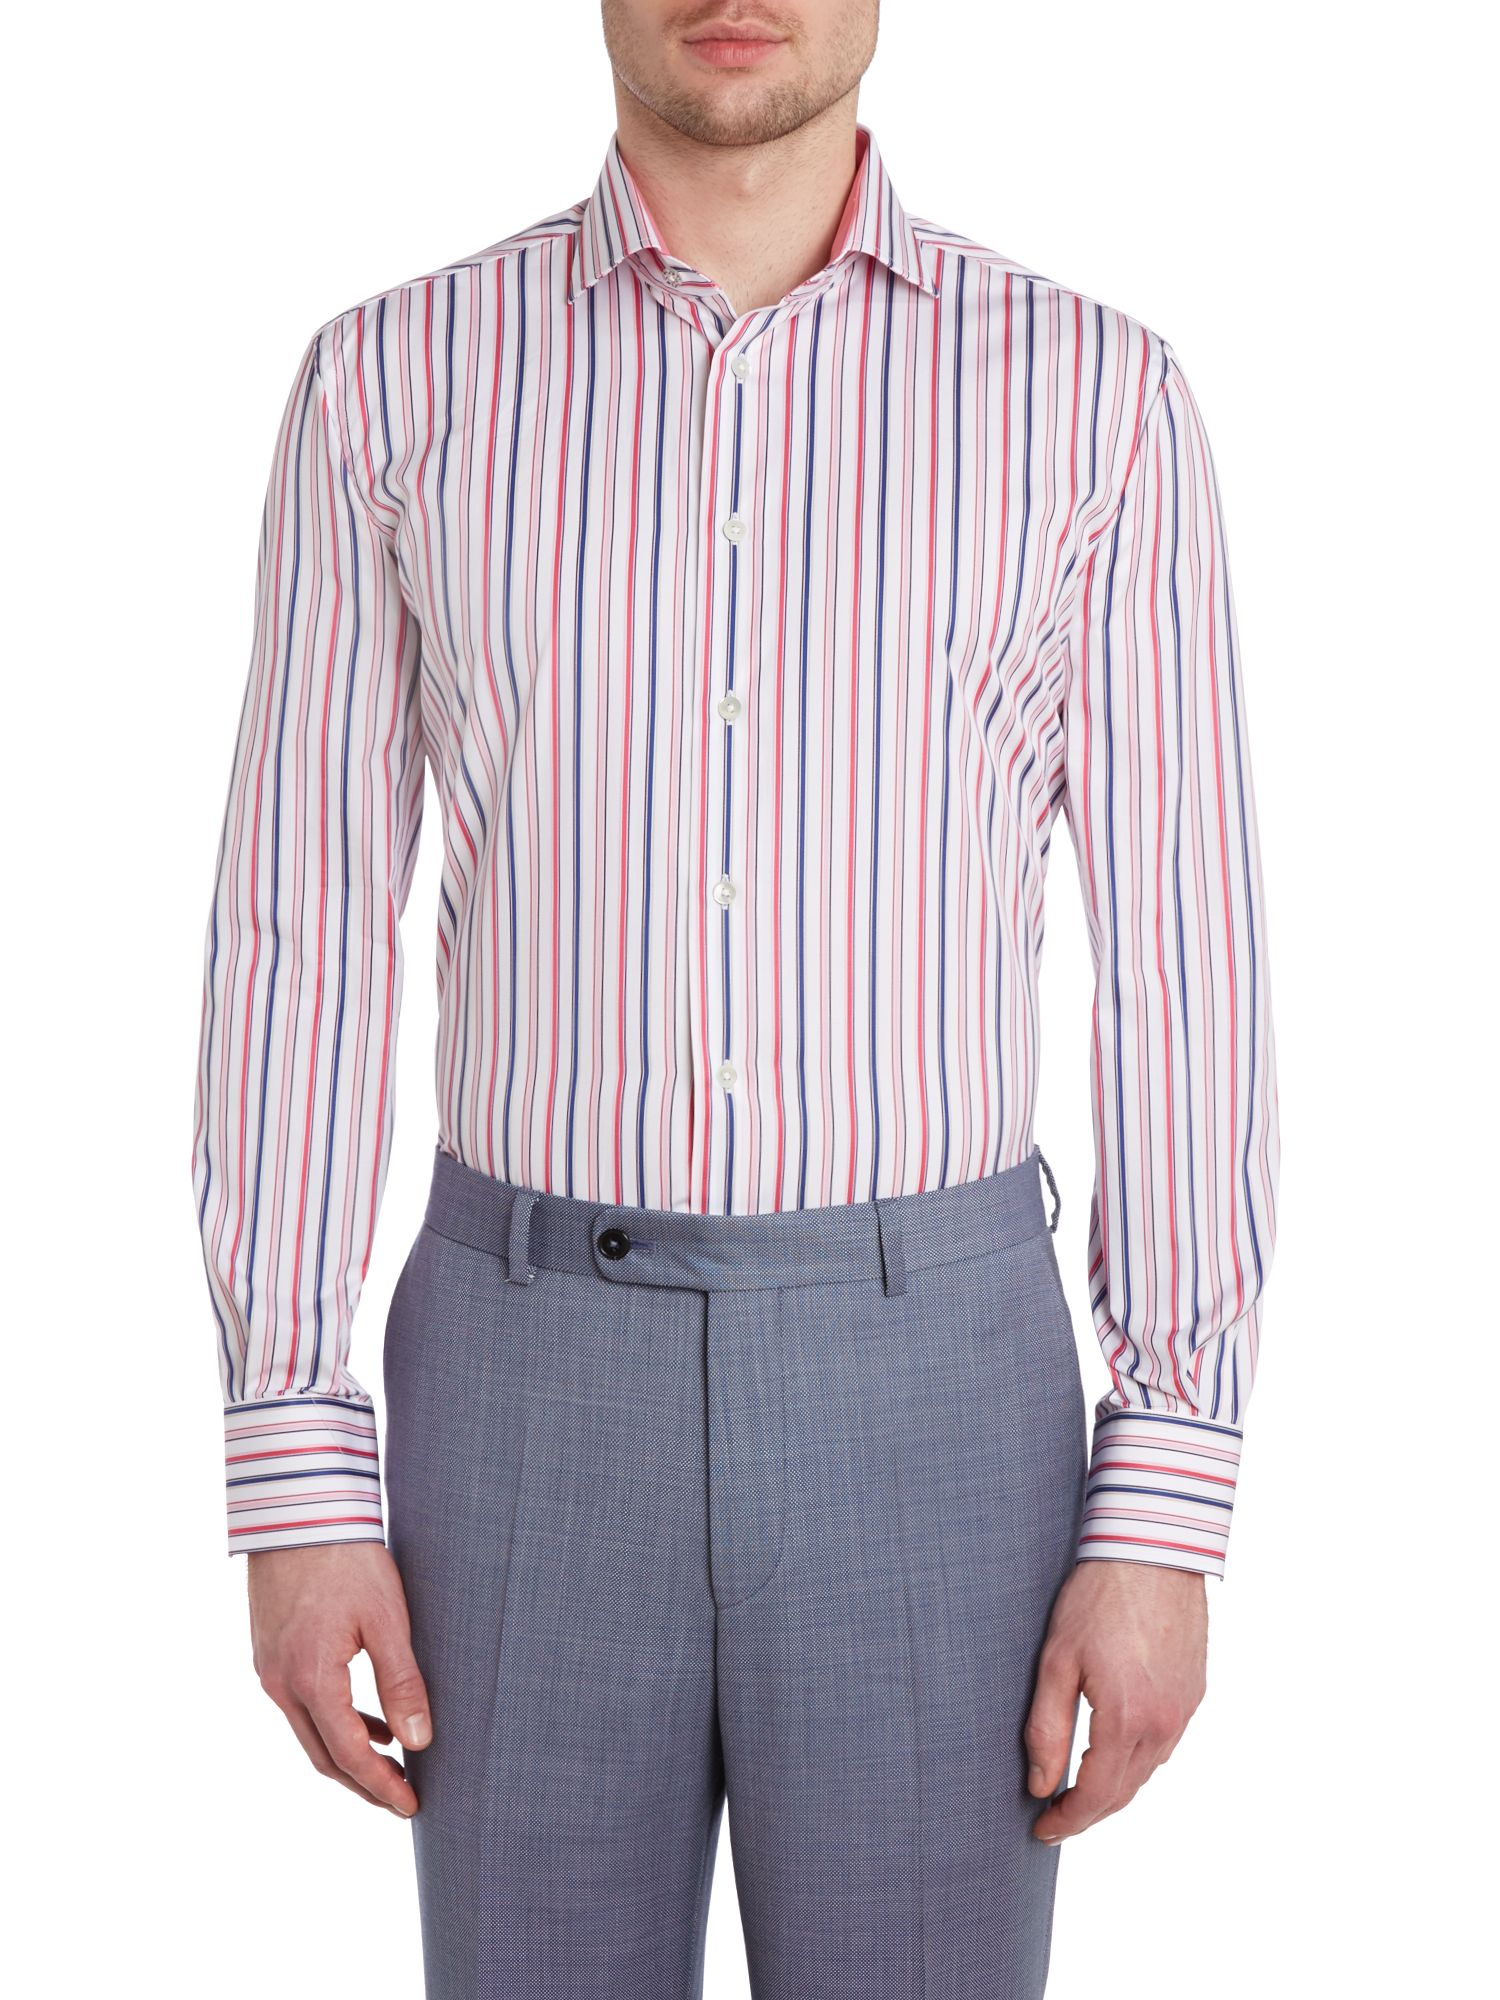 Kingswood regular fit butchers stripe shirt